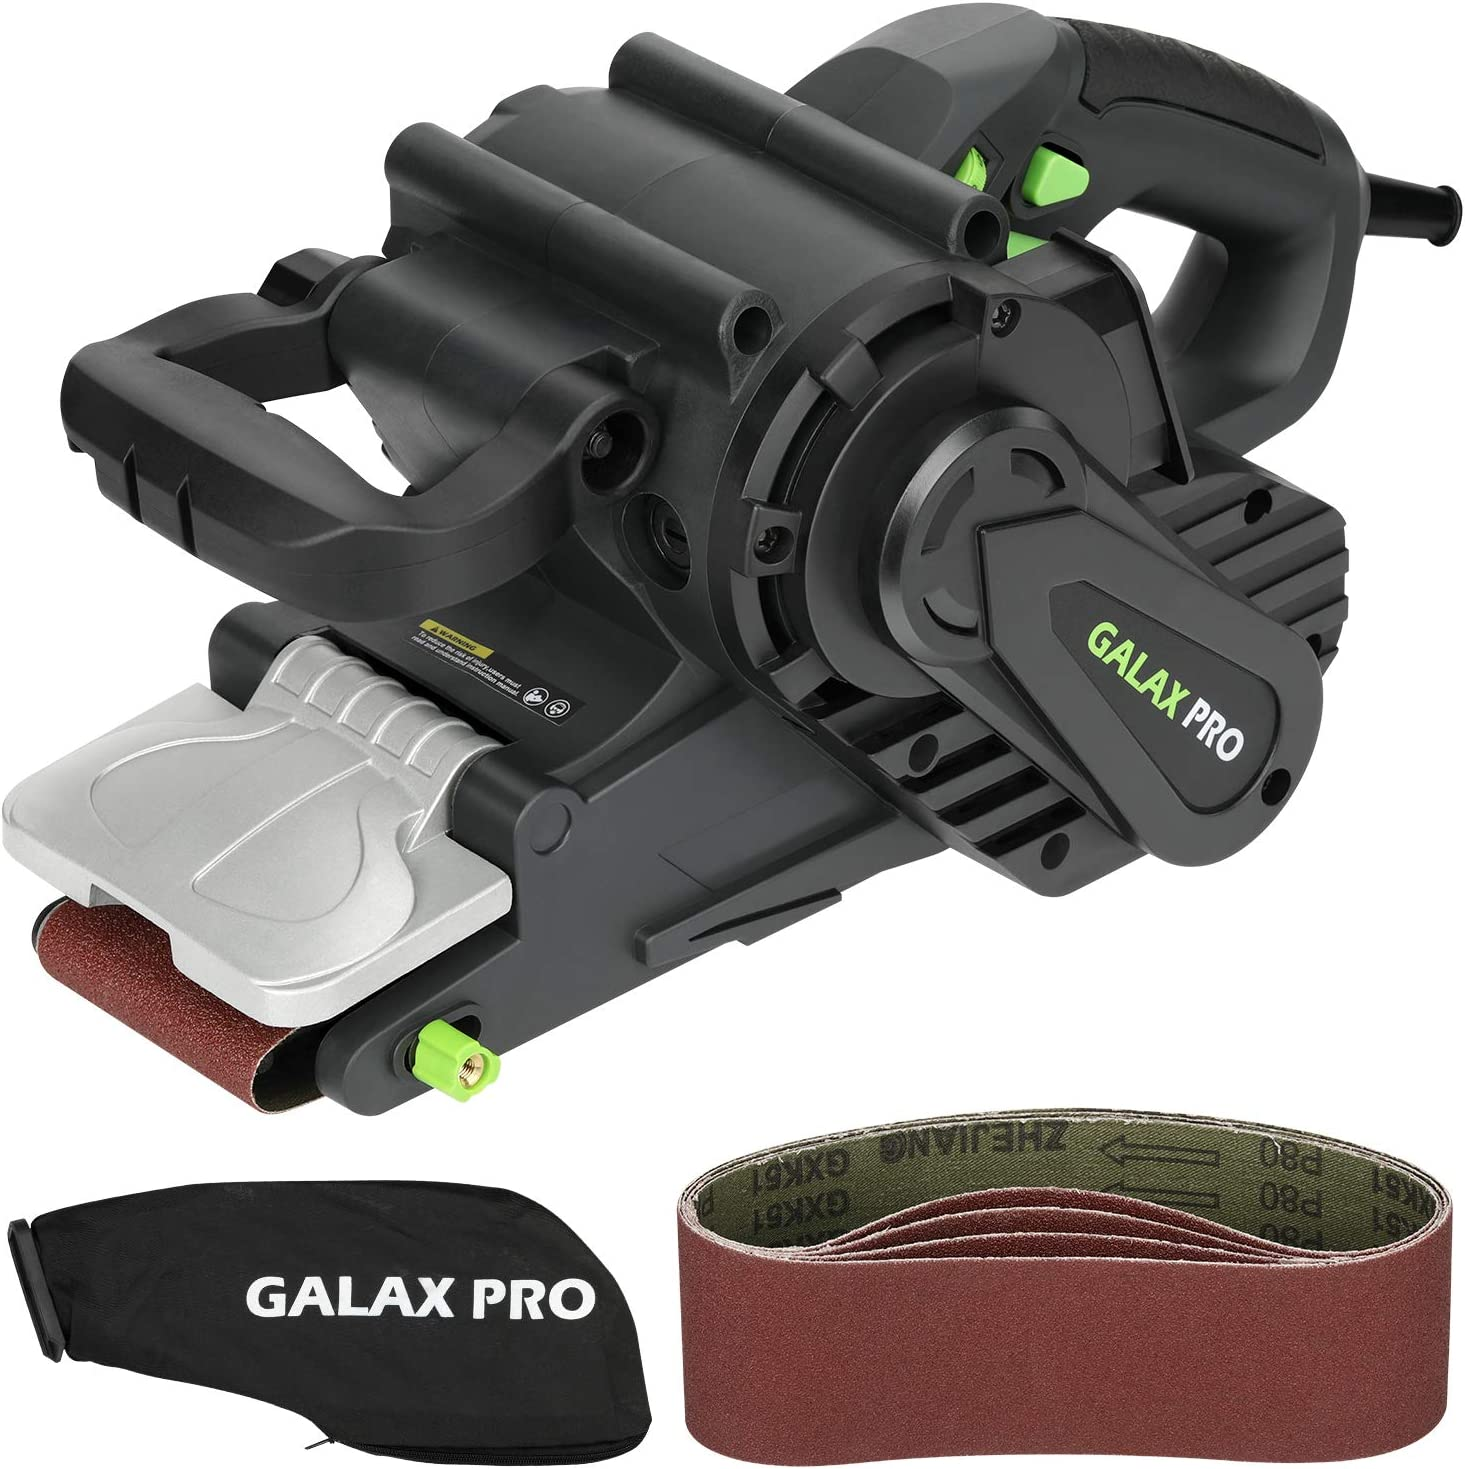 Cheap SALE Start GALAX PRO 8 Amperes Belt online shop Sander with S Variable Speed 120-380RPM